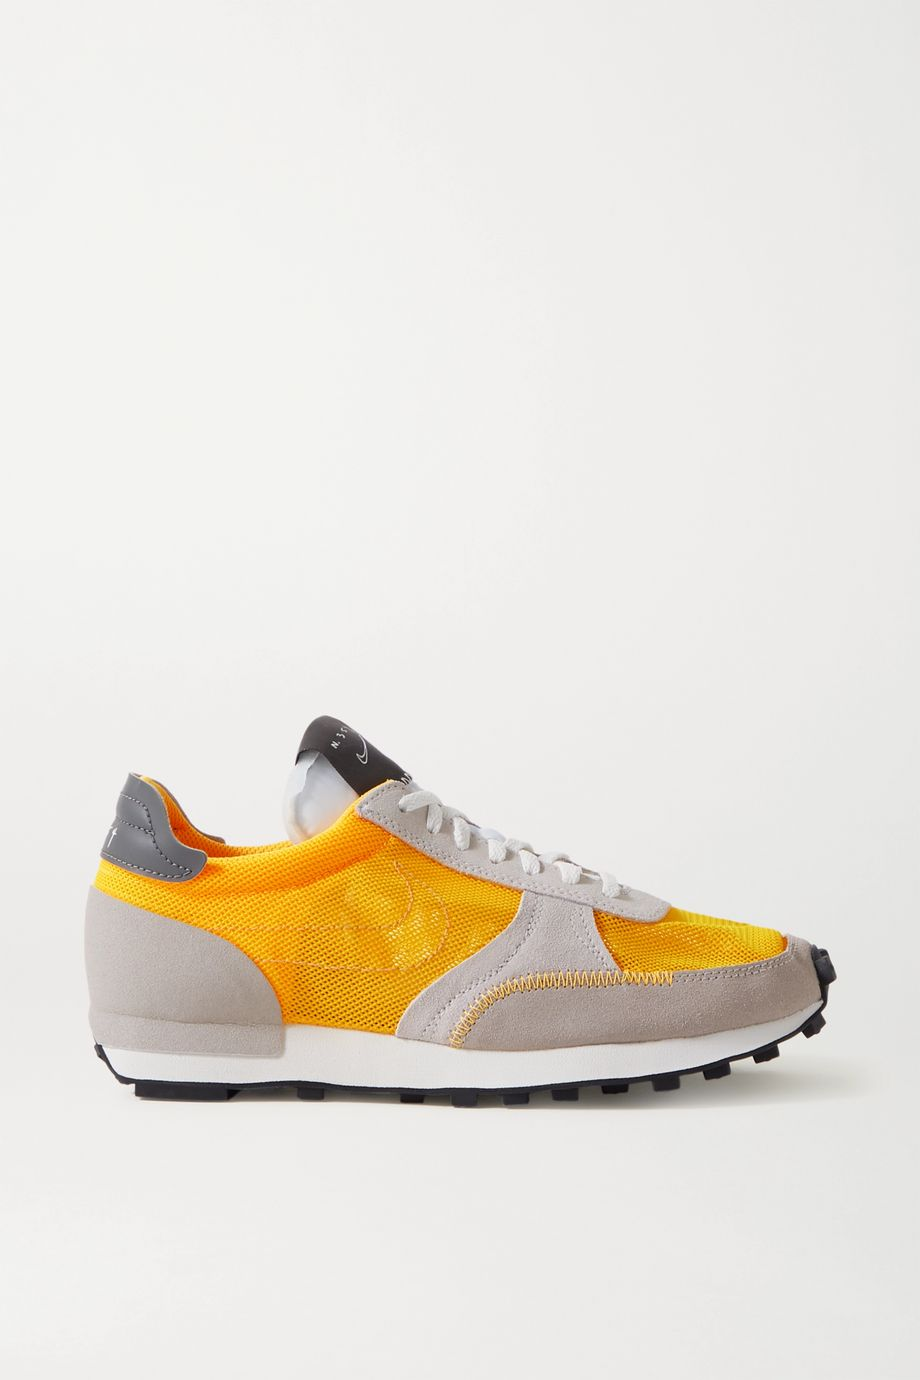 Nike Daybreak leather-trimmed mesh and suede sneakers